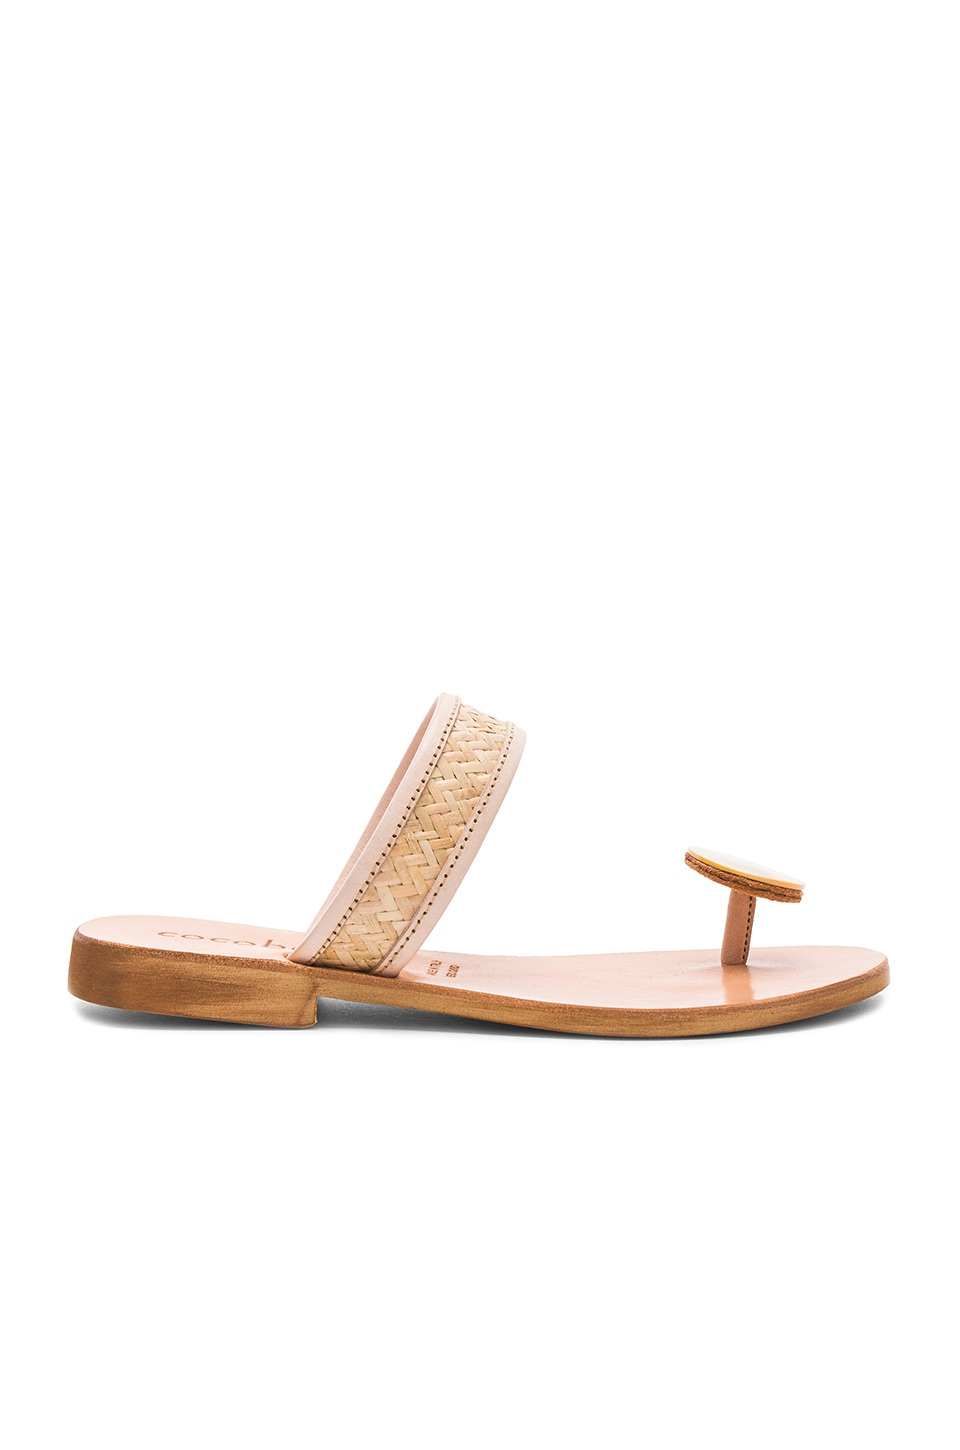 Photo of Delfina Sandals by cocobelle shoes